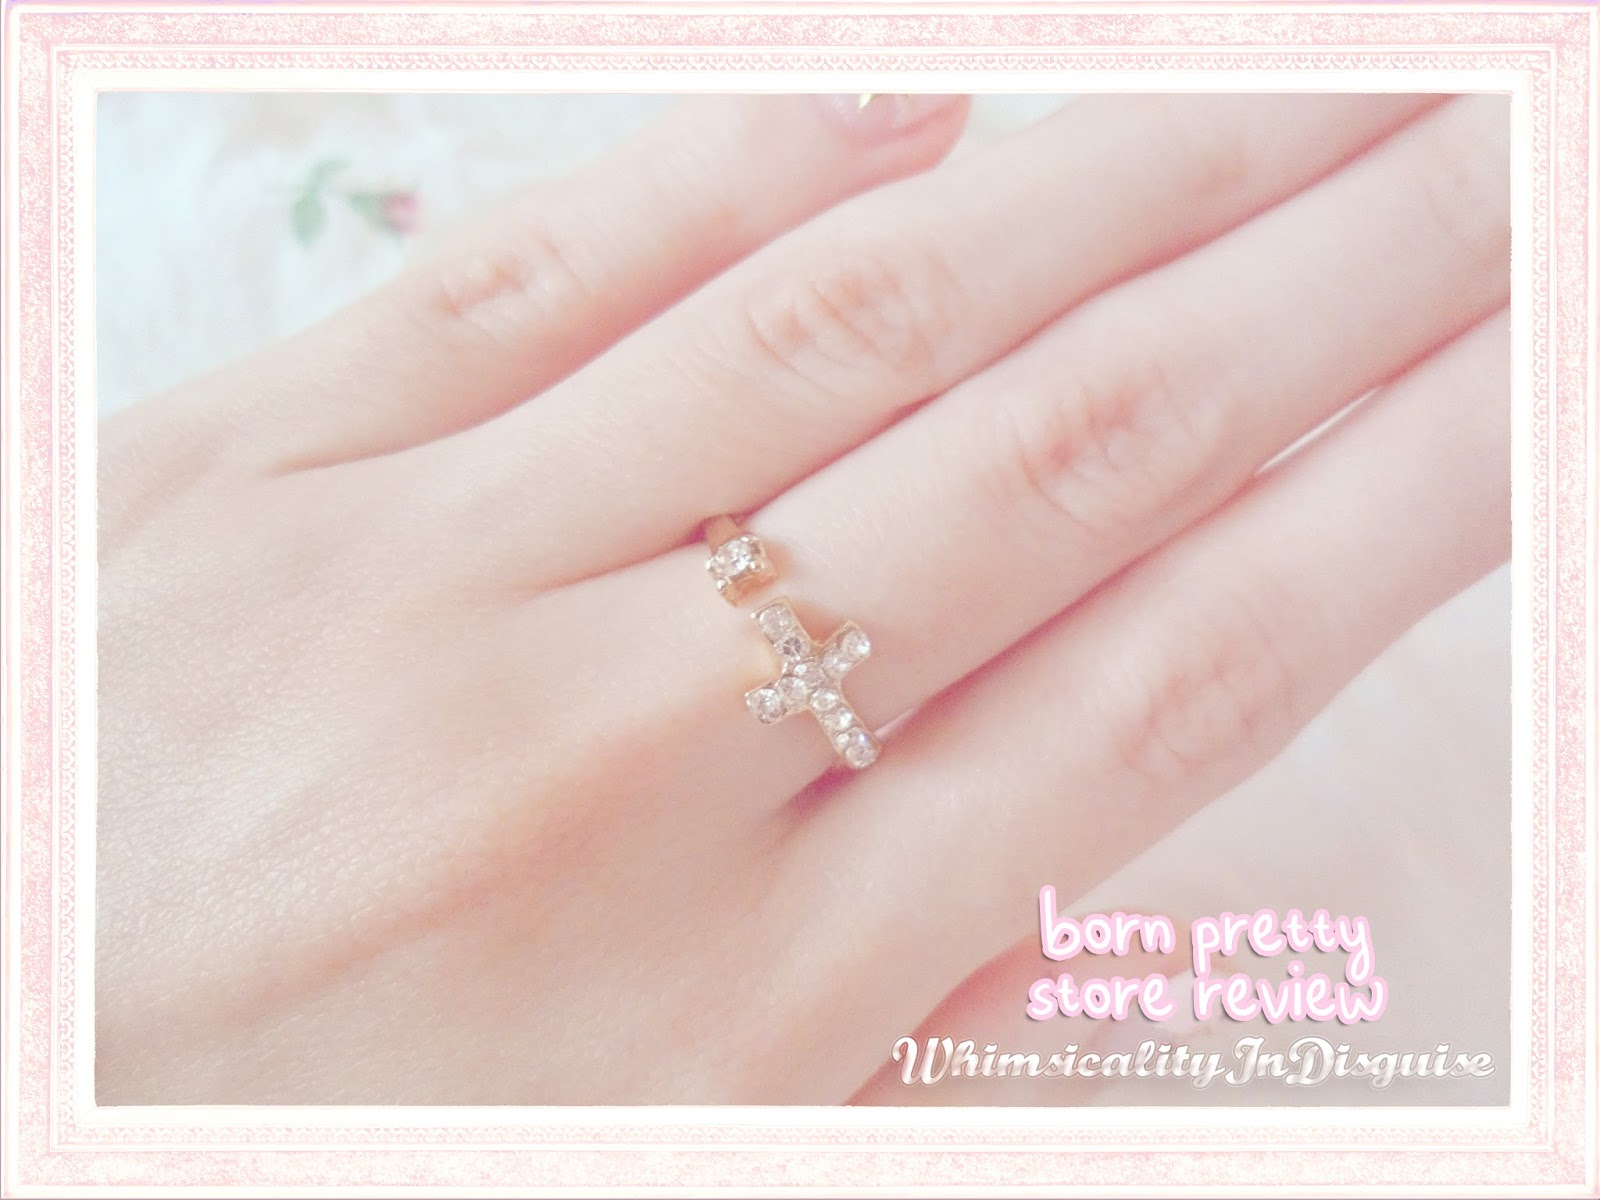 Born Pretty Store ring accessory review discount code